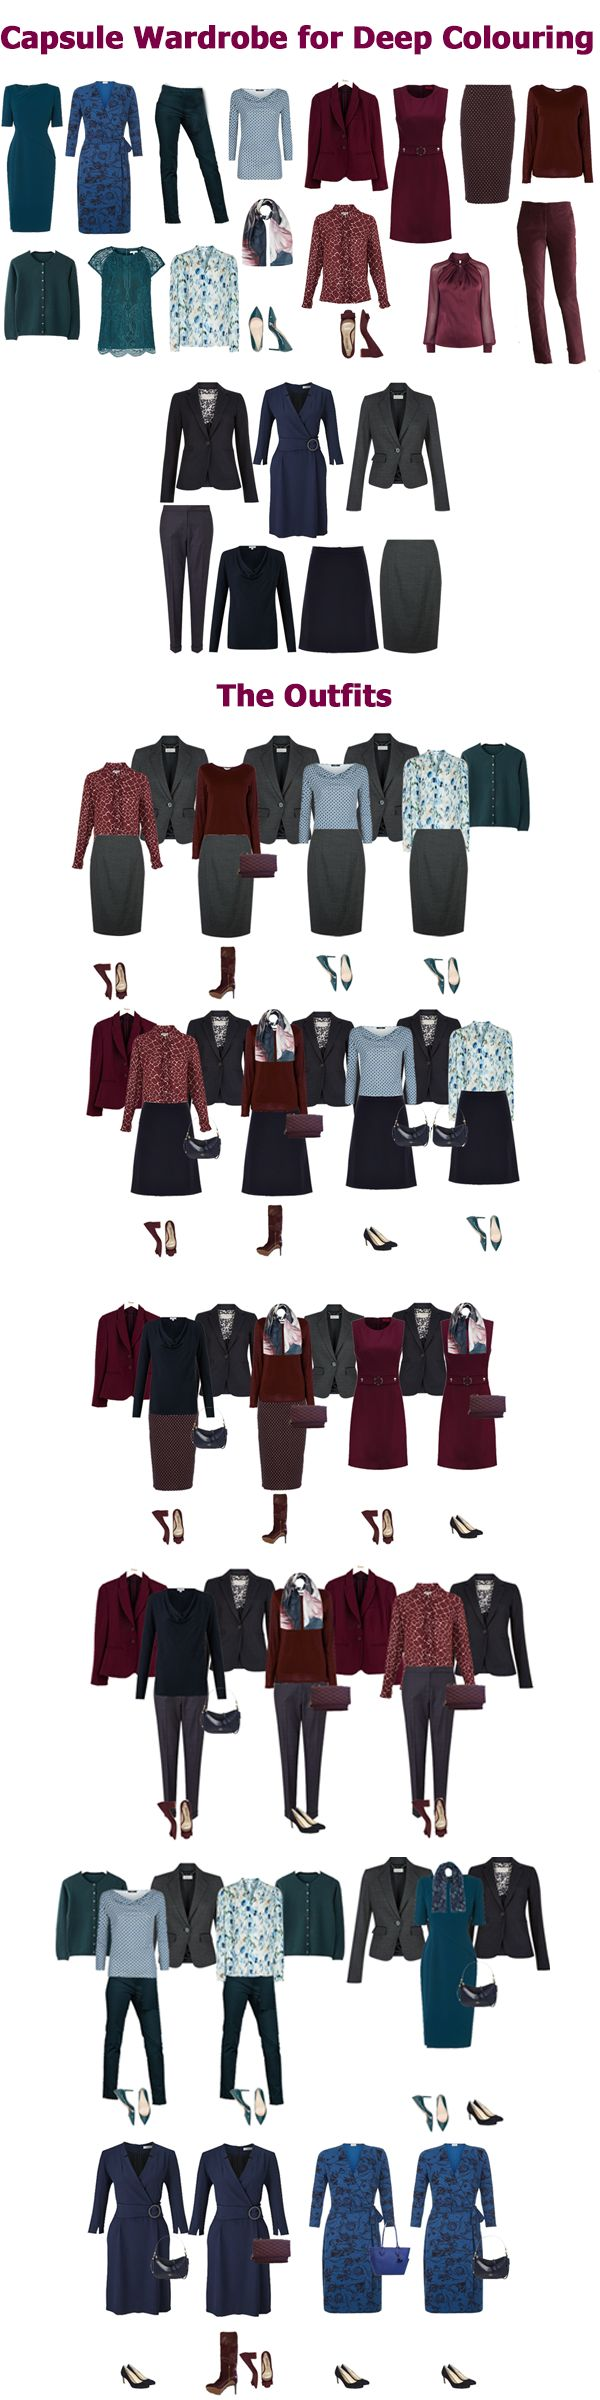 Autumn business wear capsule wardrobe example #capsulewardrobe #seasonalcapsulewardrobe #capsulewardrobeservice #yourbestcolours